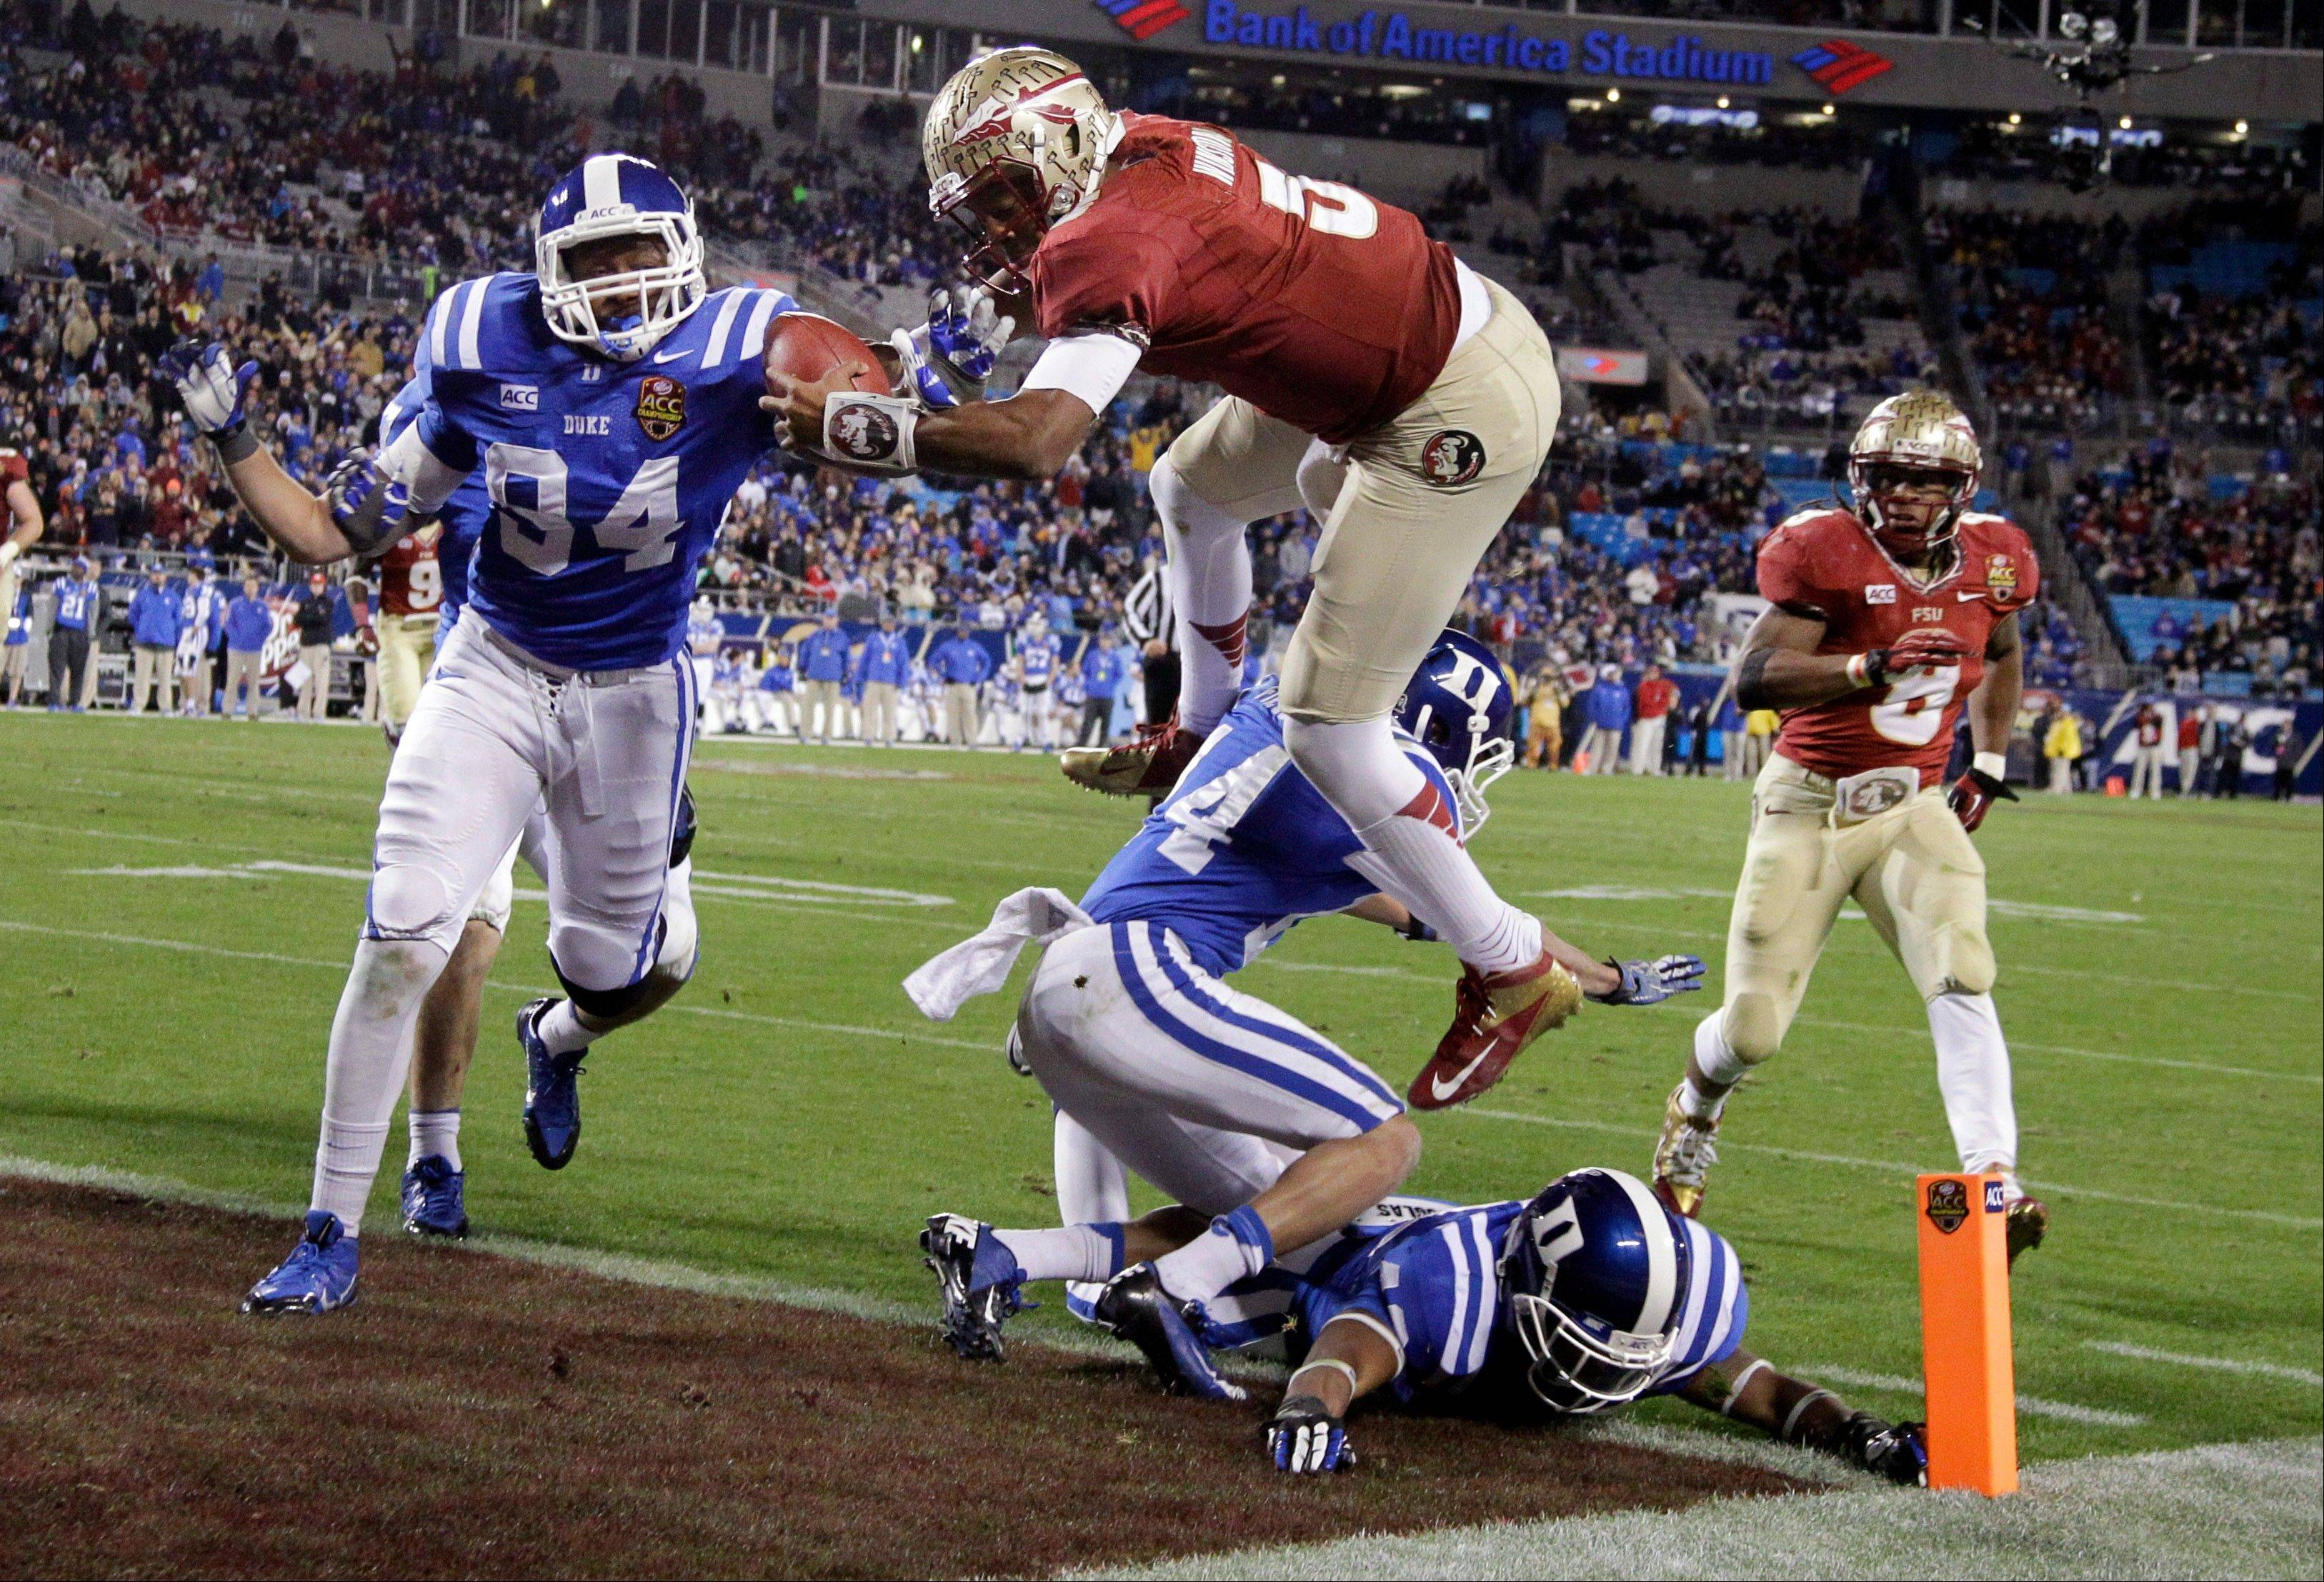 Florida State�s Jameis Winston (5) leaps over Duke�s Bryon Fields (14) for a touchdown during the Atlantic Coast Conference Championship Saturday in Charlotte, N.C.